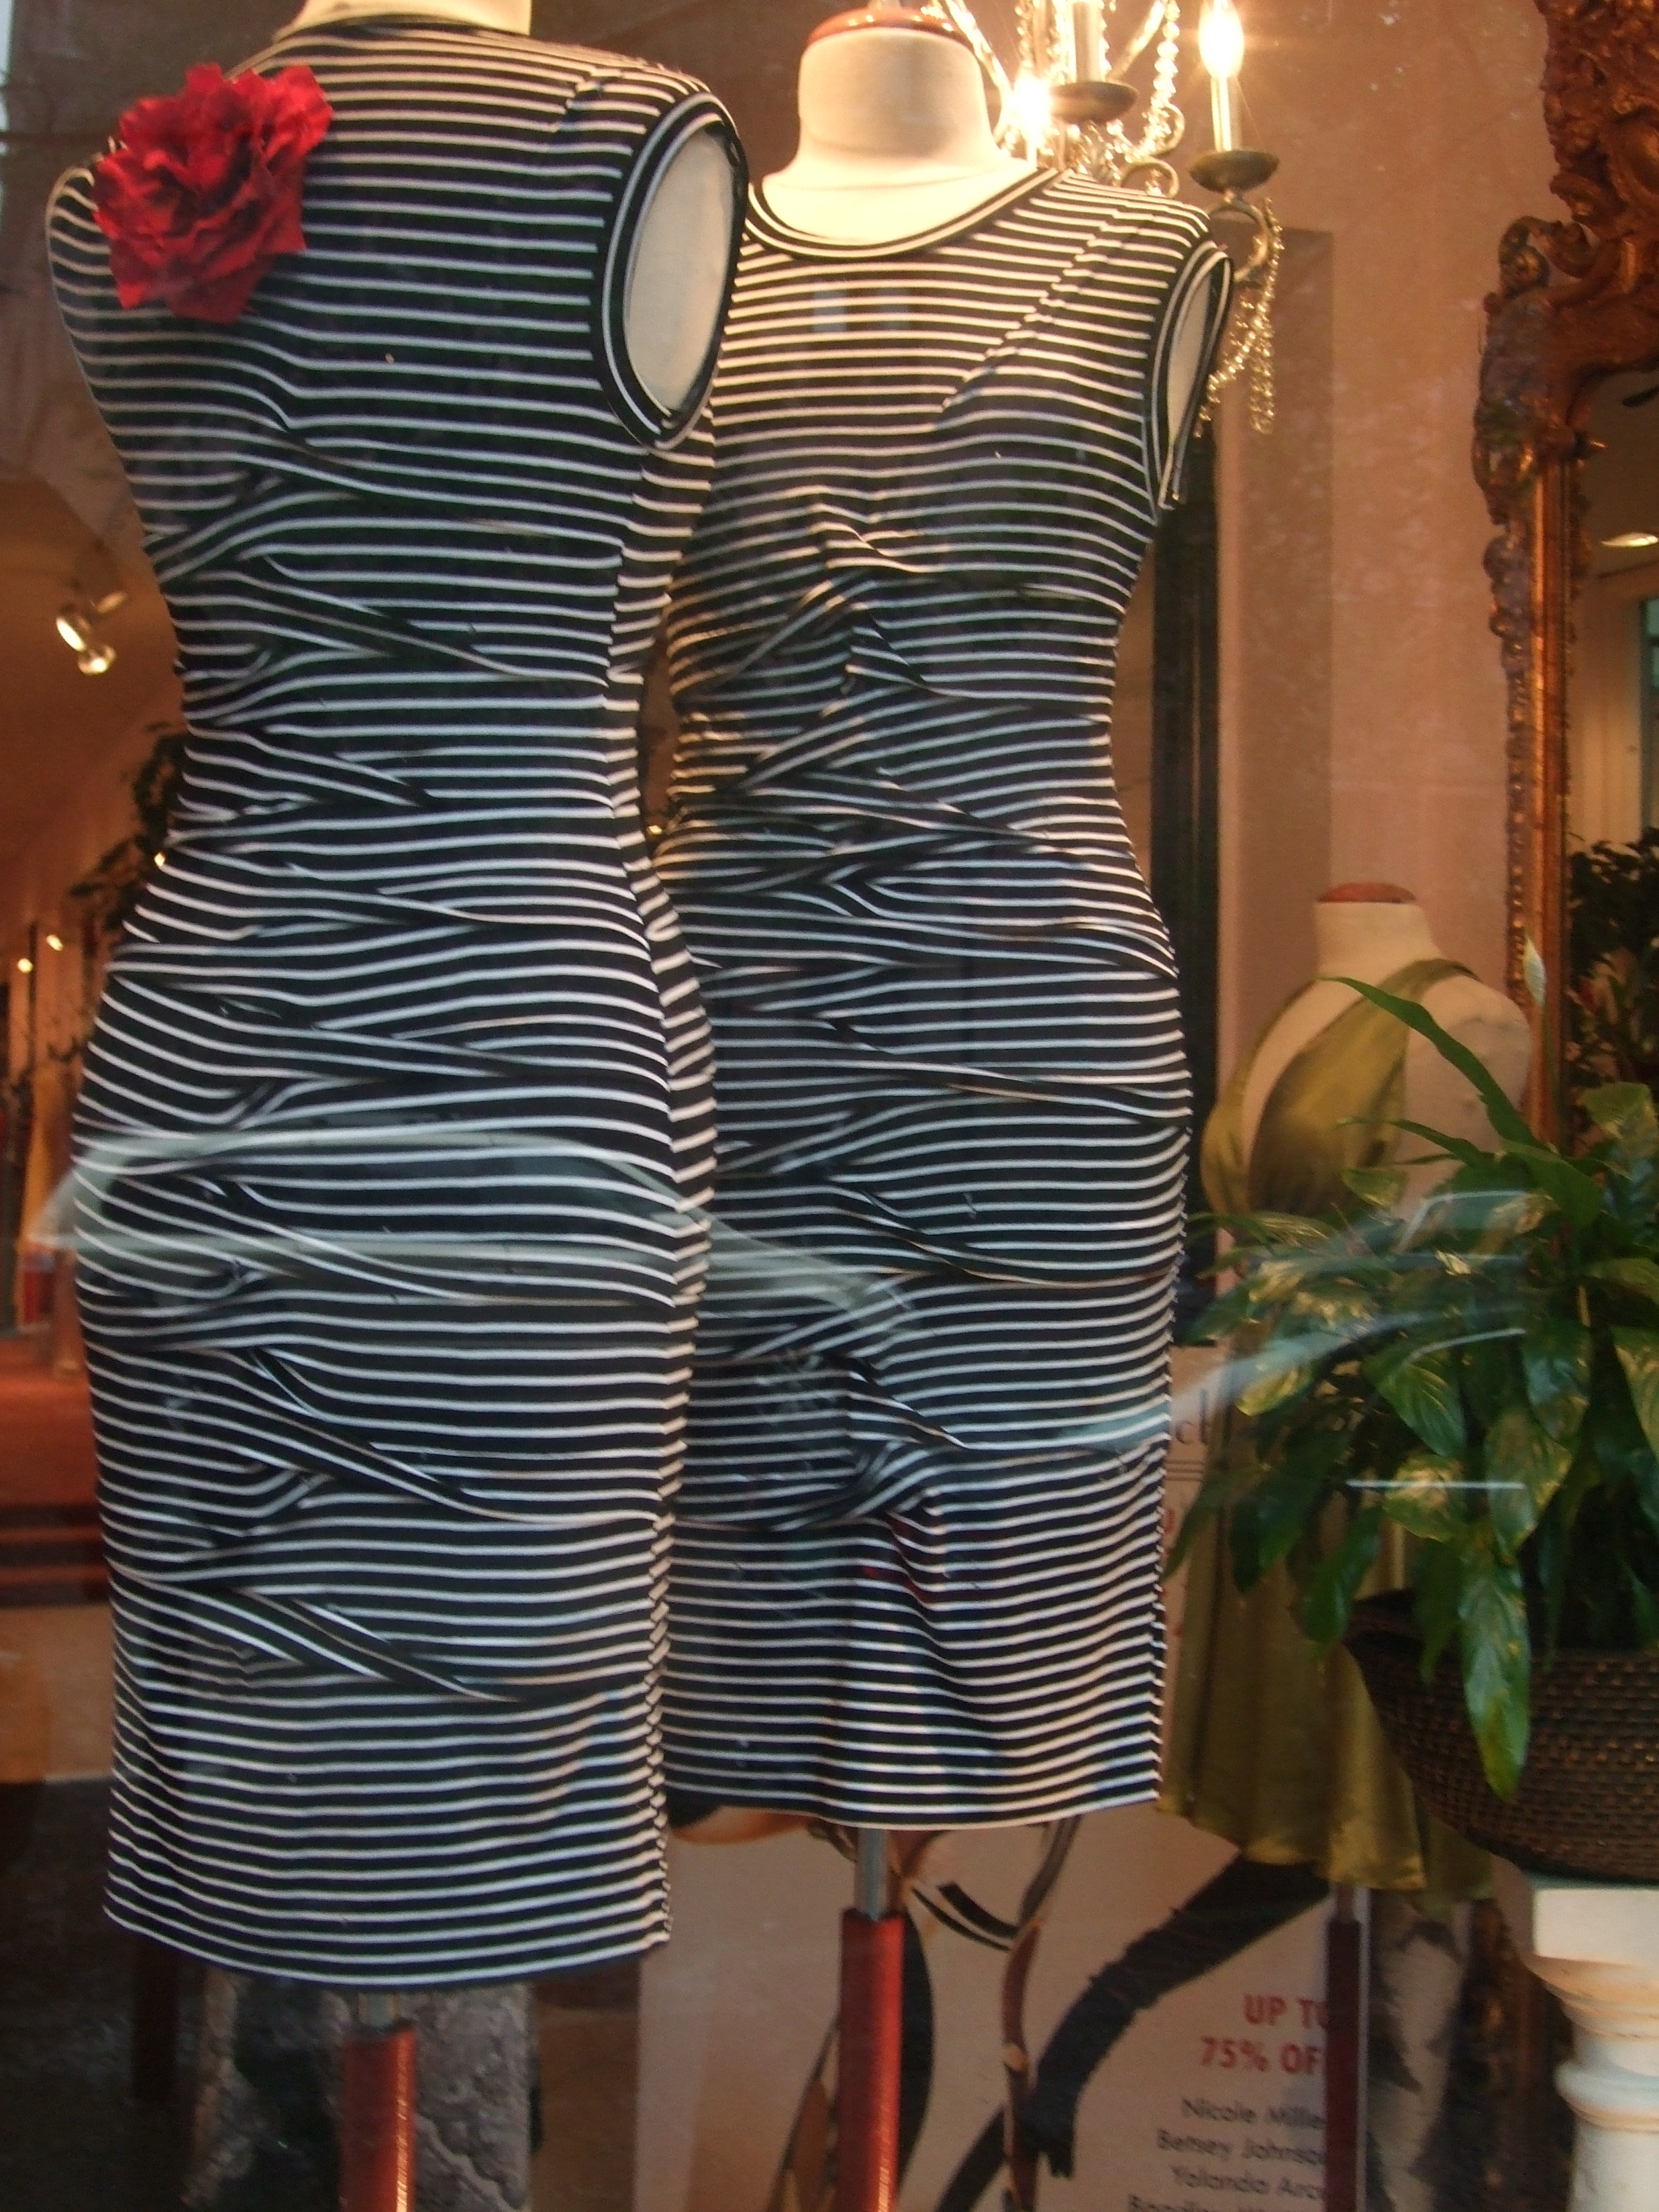 New Arrival  from Nicole Miller In Seychelles New Haven